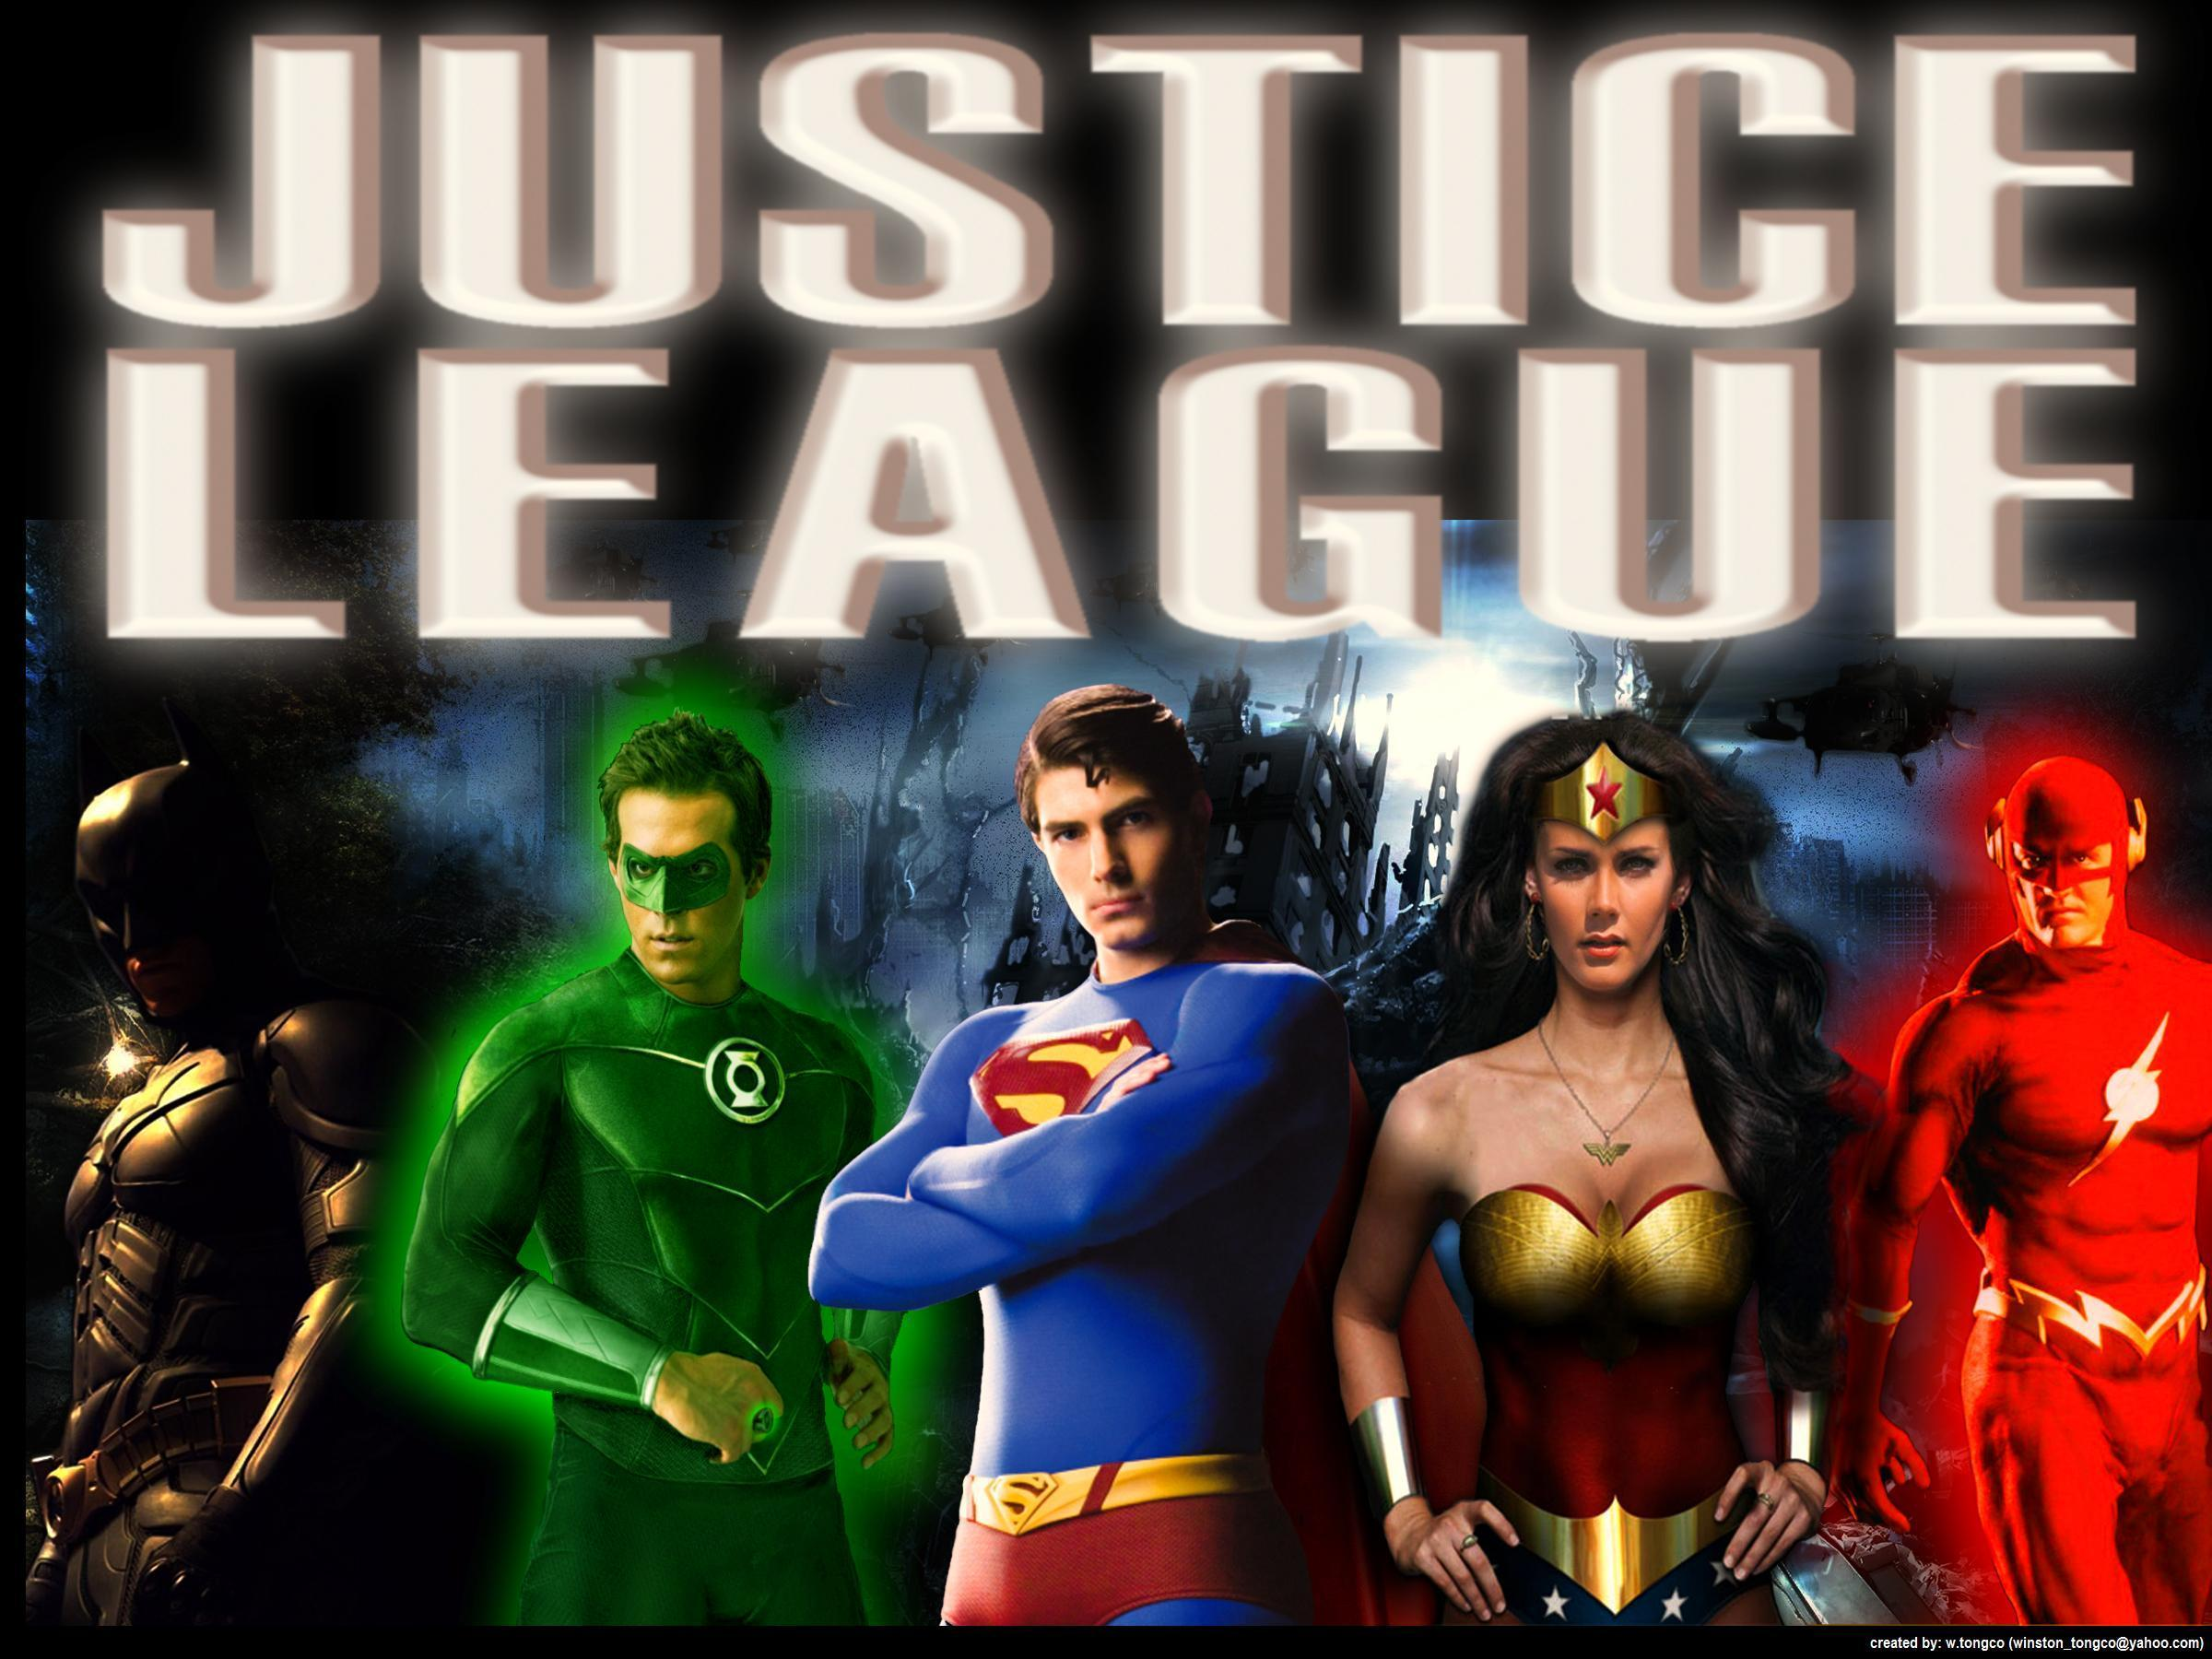 Justice League - Justice League Wallpaper (9518939) - Fanpop fanclubs